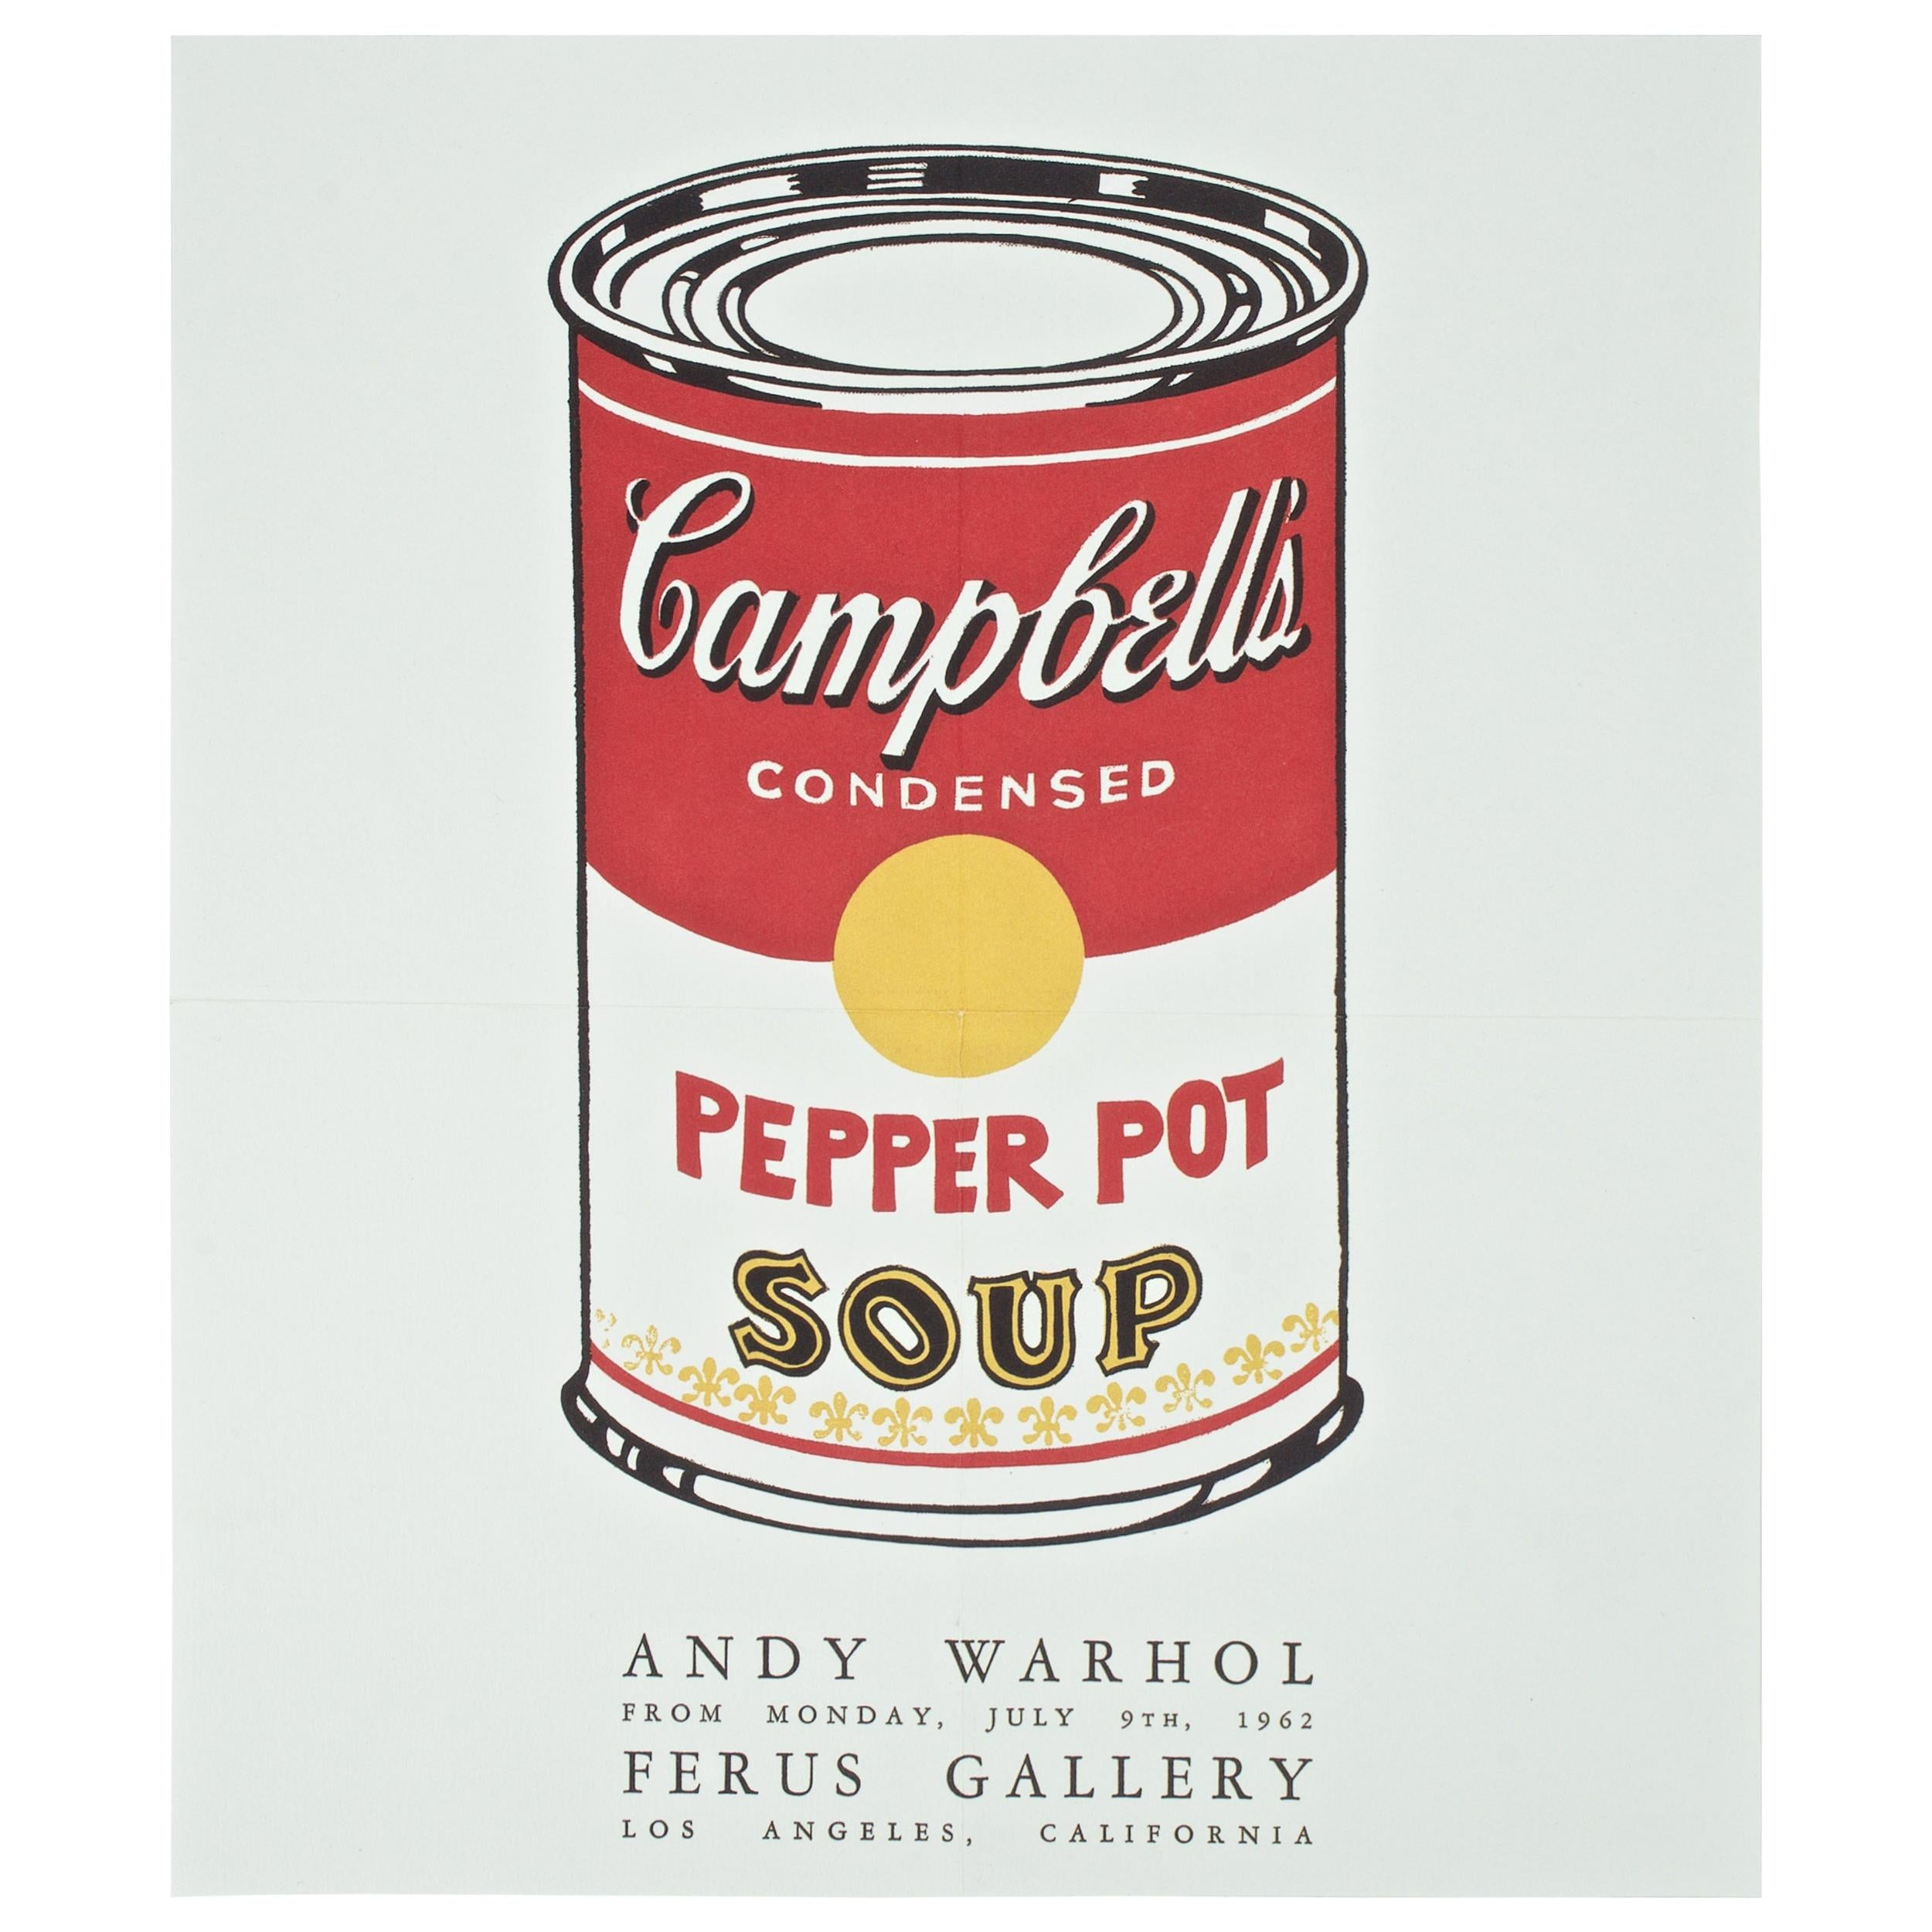 Ferus Gallery Los Angeles Promo Andy Warhol Campbells Soup Can Pop Art Show